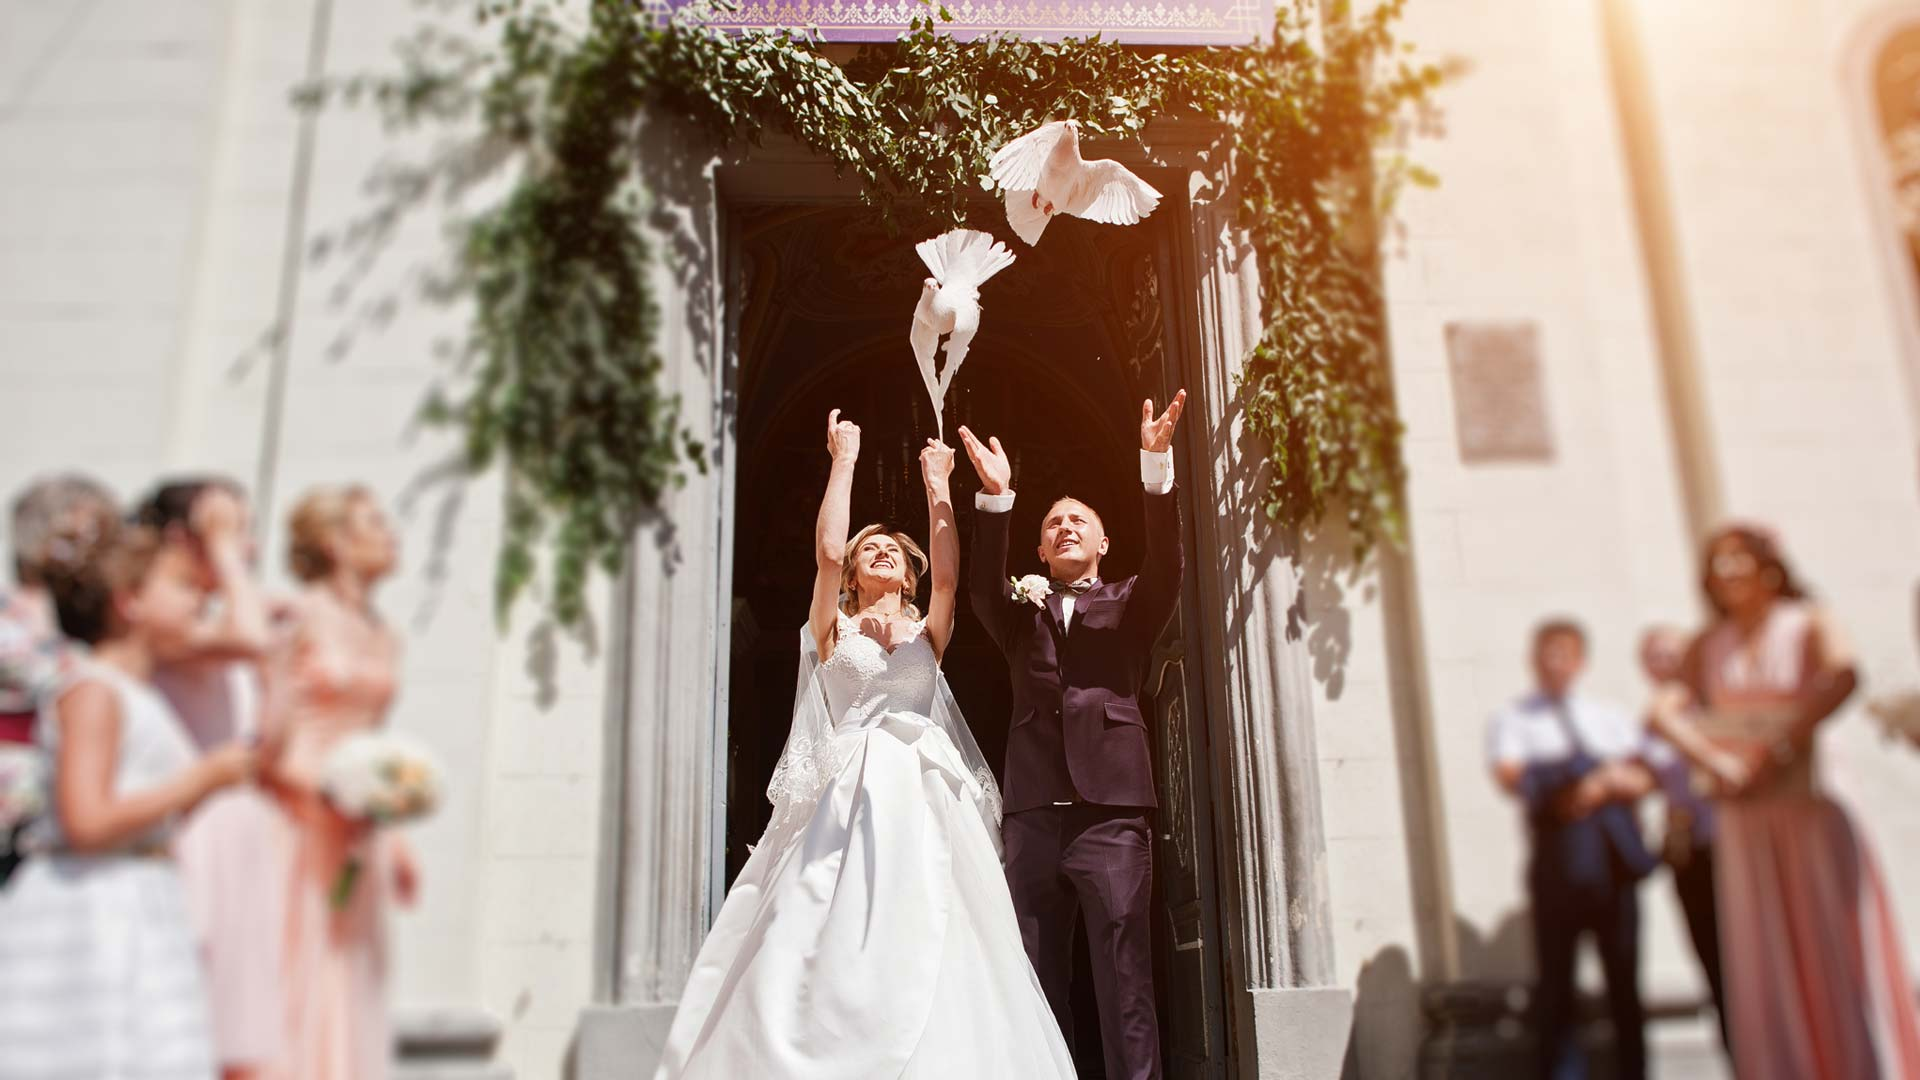 Two beautiful white doves being released by the bride and groom at a wedding ceremony in Baltimore, MD.